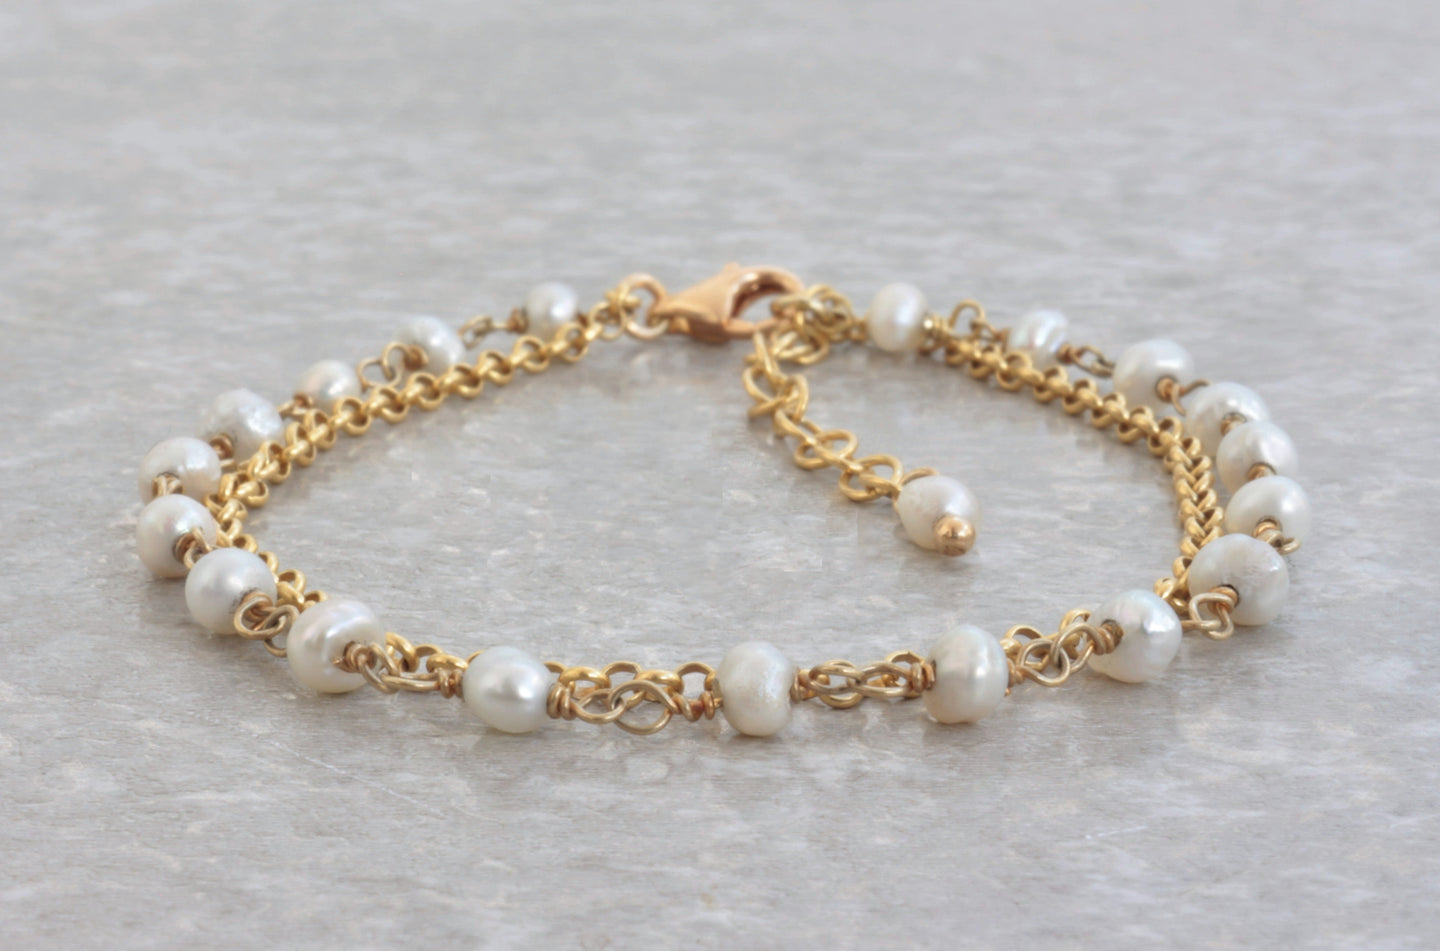 Pearl_beaded_bracelet_rosary_style_gift_for_herPearl_beaded_bracelet_rosary_style_gift_for_her